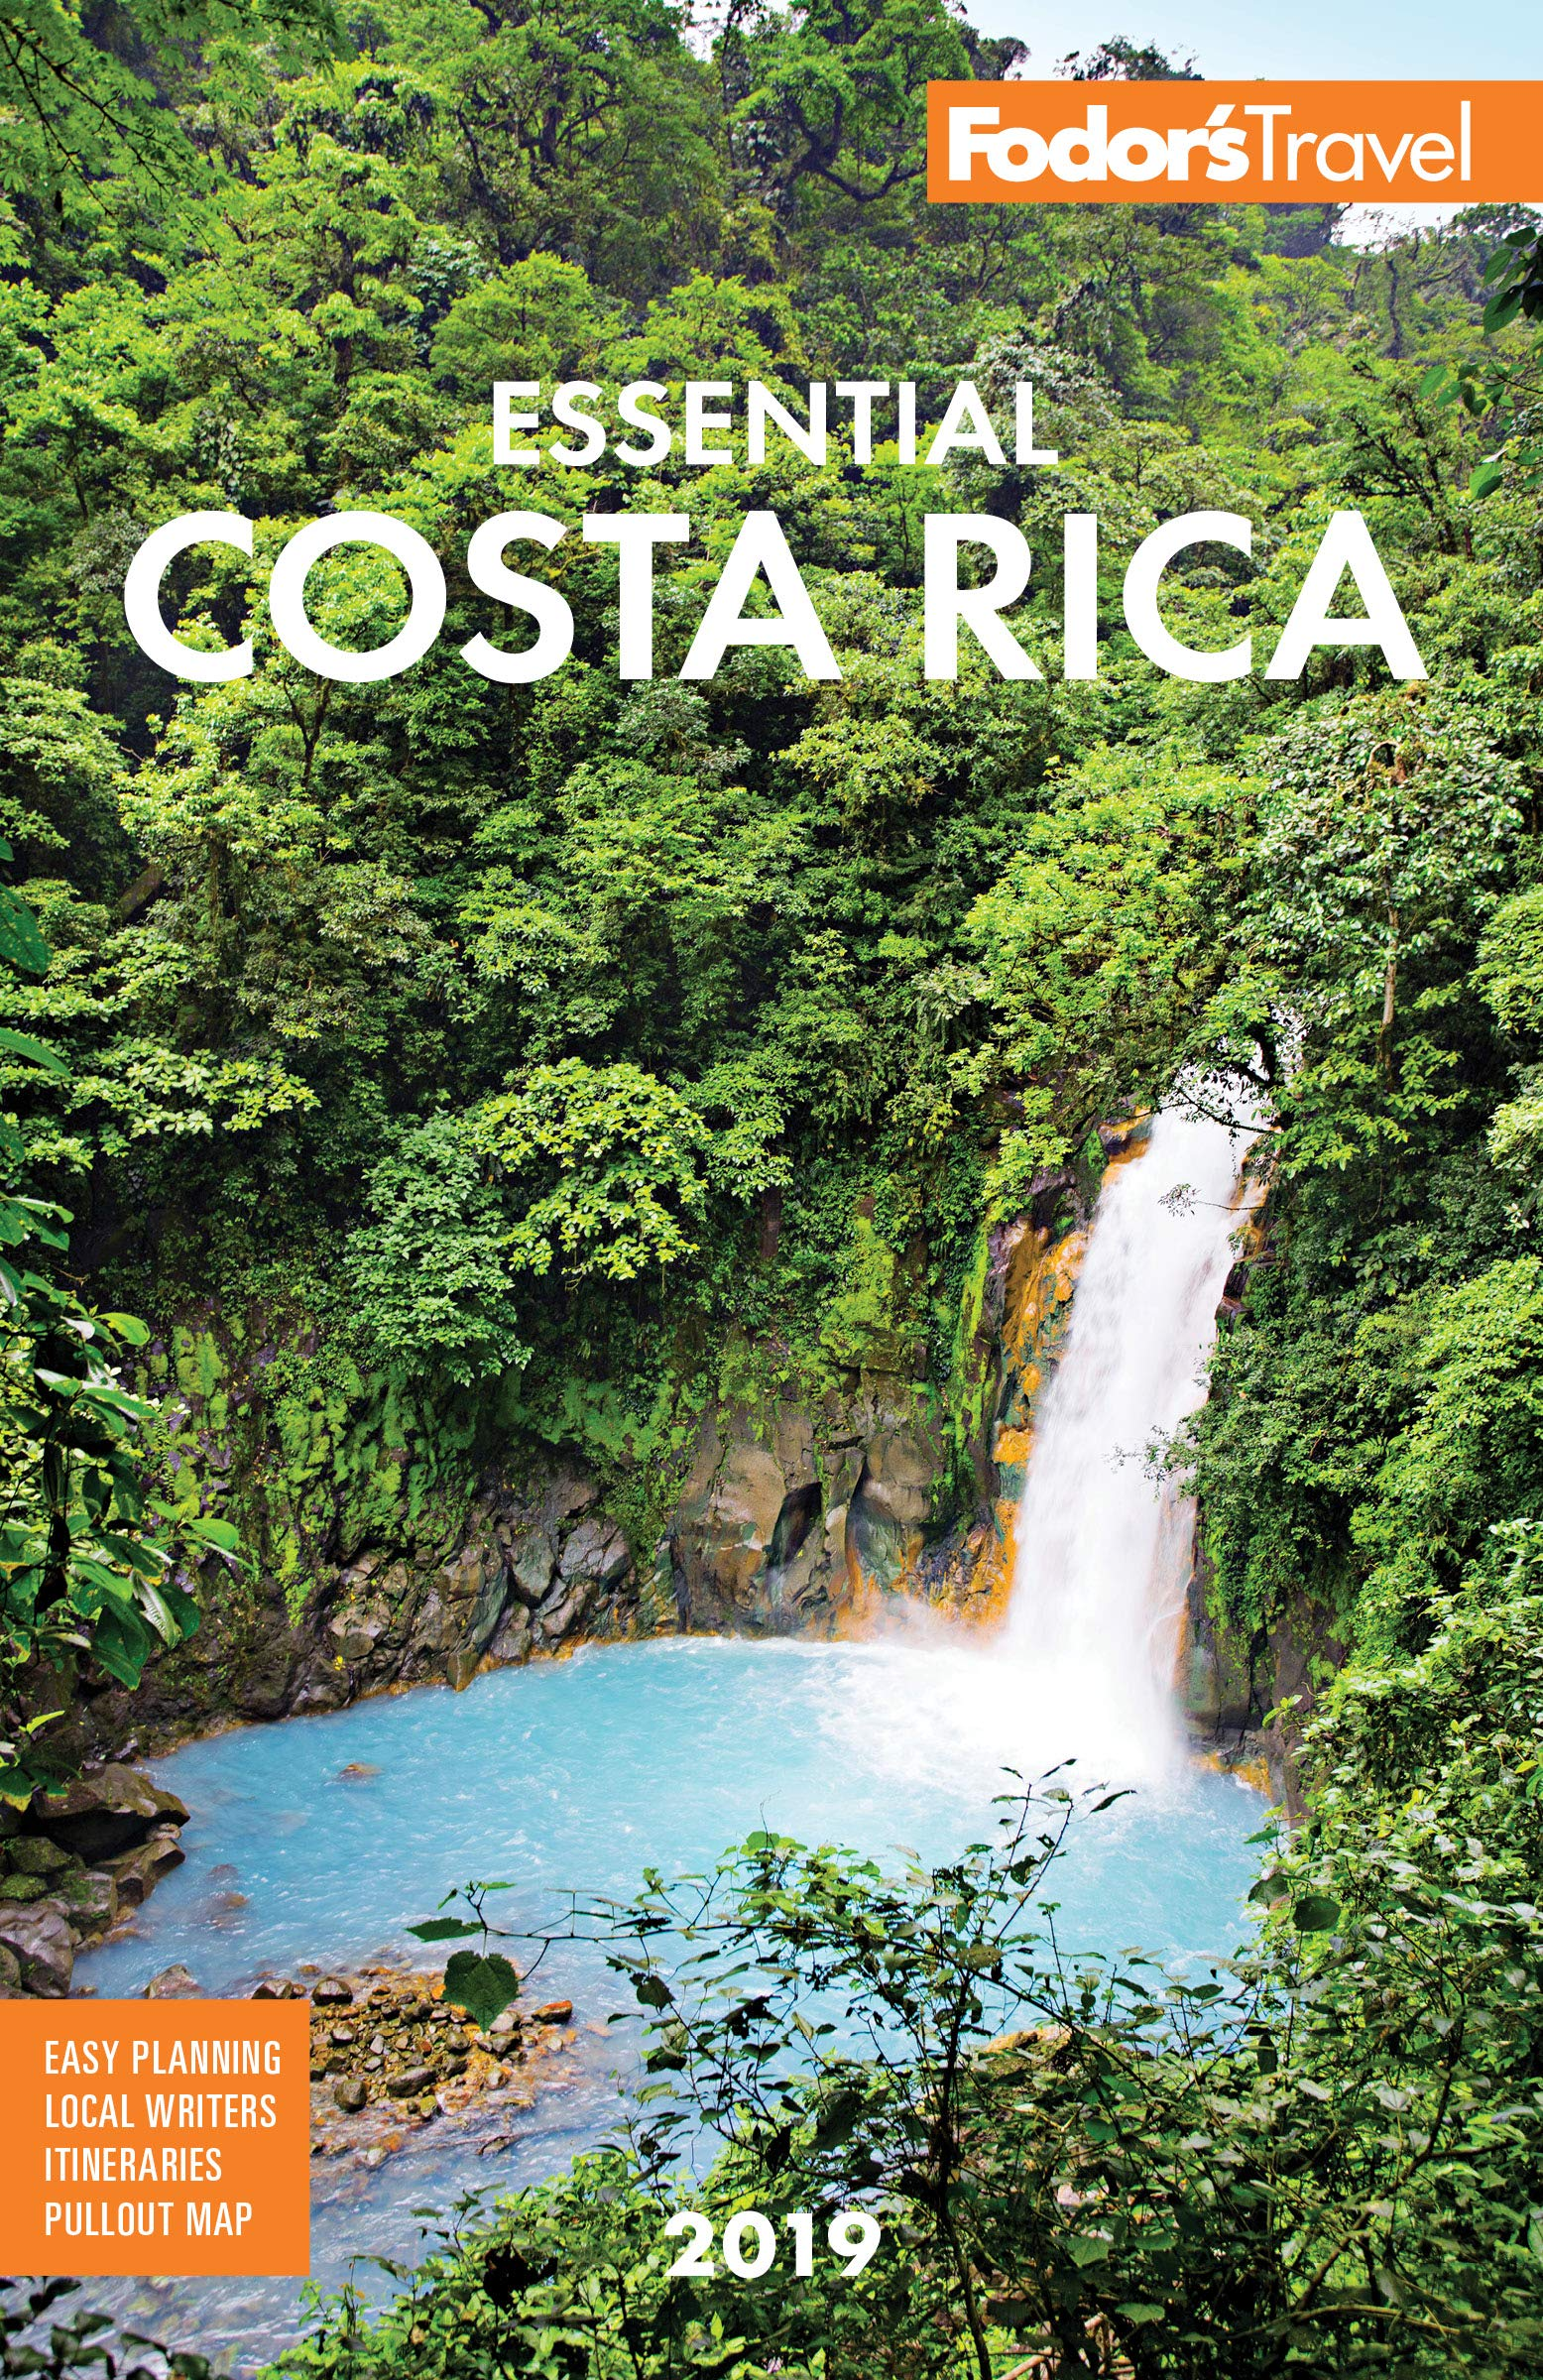 Fodor's Essential Costa Rica 2019 (Full-color Travel Guide) by Fodor's Travel